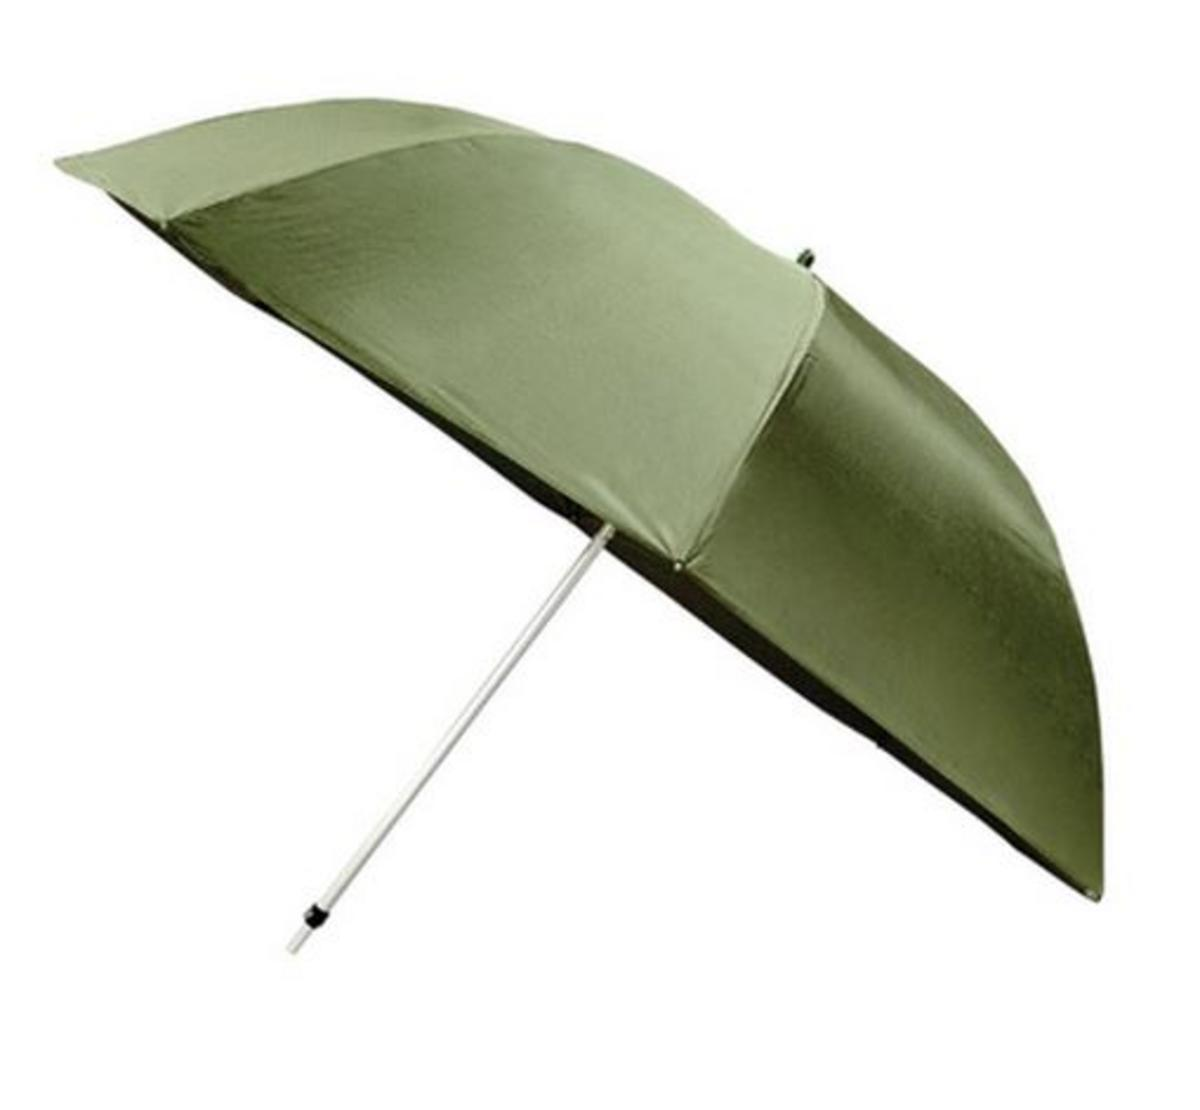 New Daiwa Mission Brolly / Umbrella / Shelter 125cm - MB125